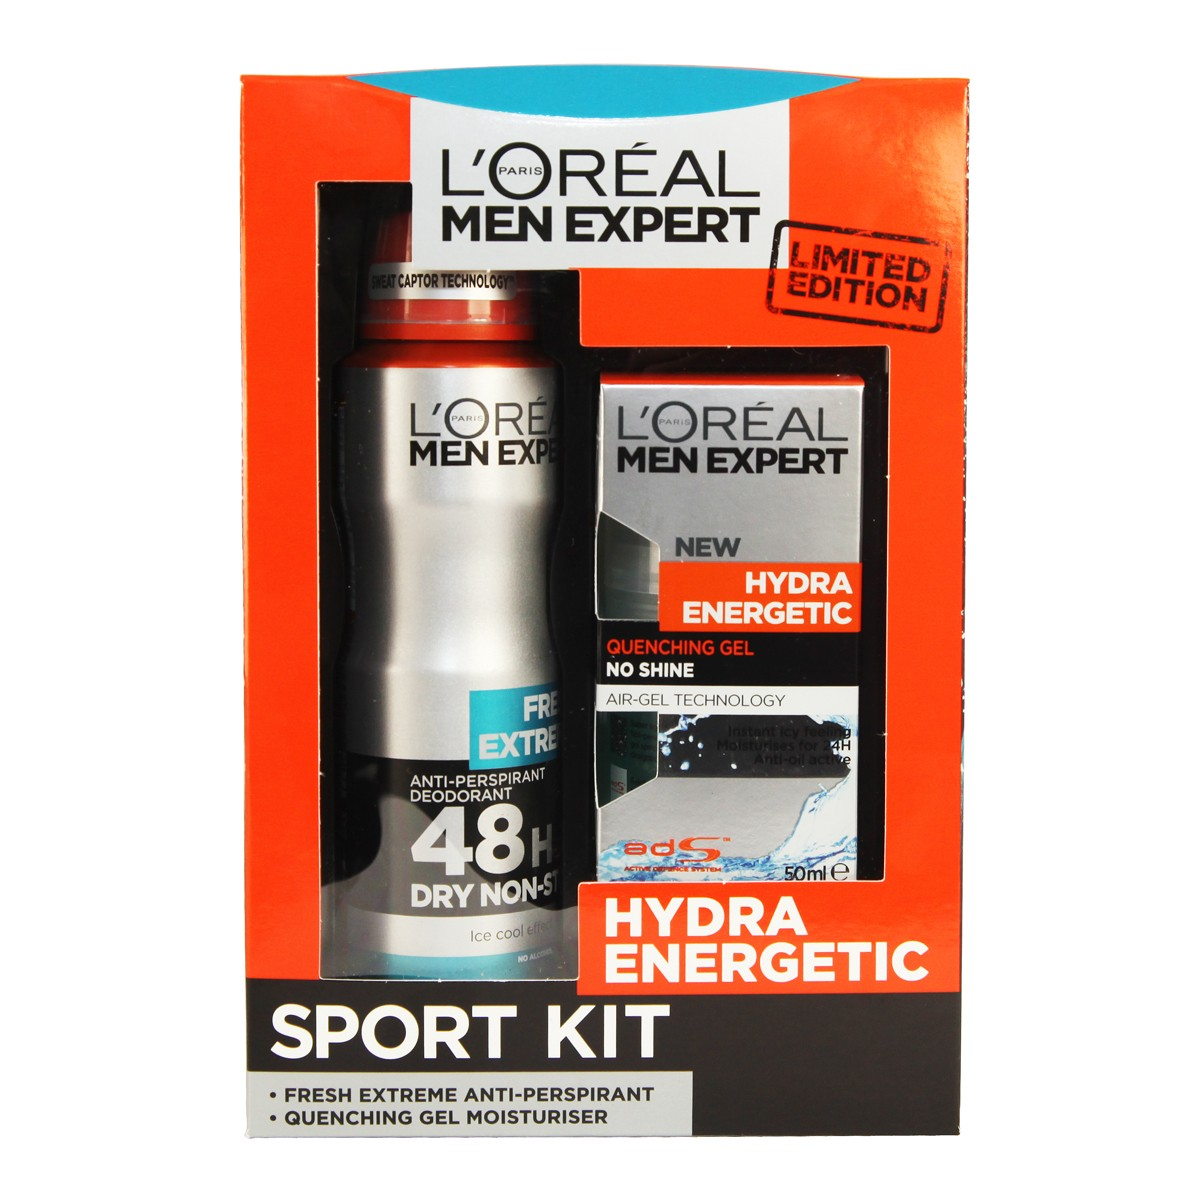 L'Oreal Paris Men Expert Hydra Energetic Sport Kit